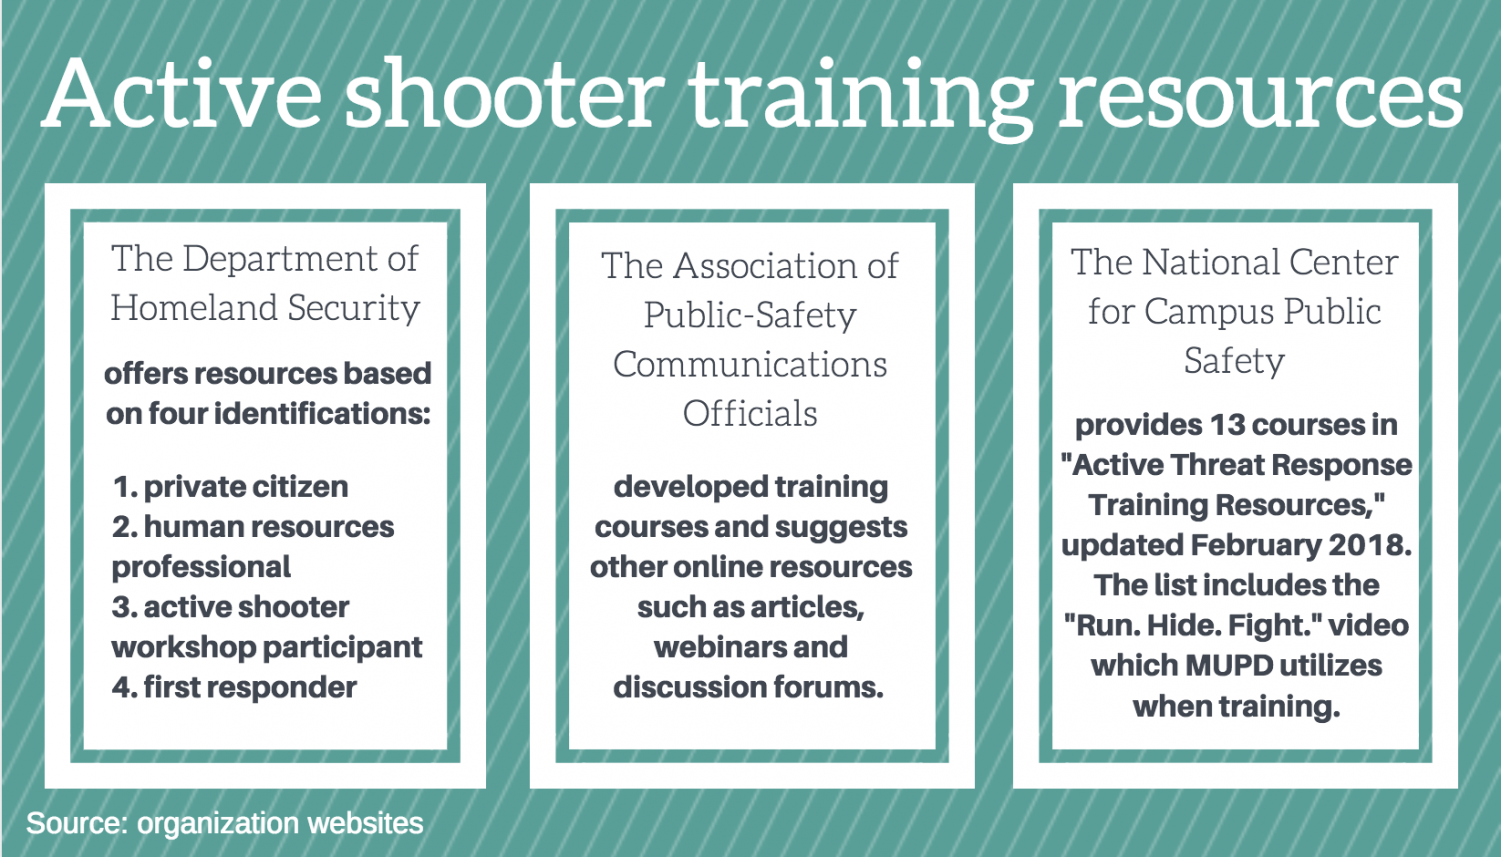 There are various active shooter training methods and resources utilized throughout the U.S. Graphic by Jenny Whidden.